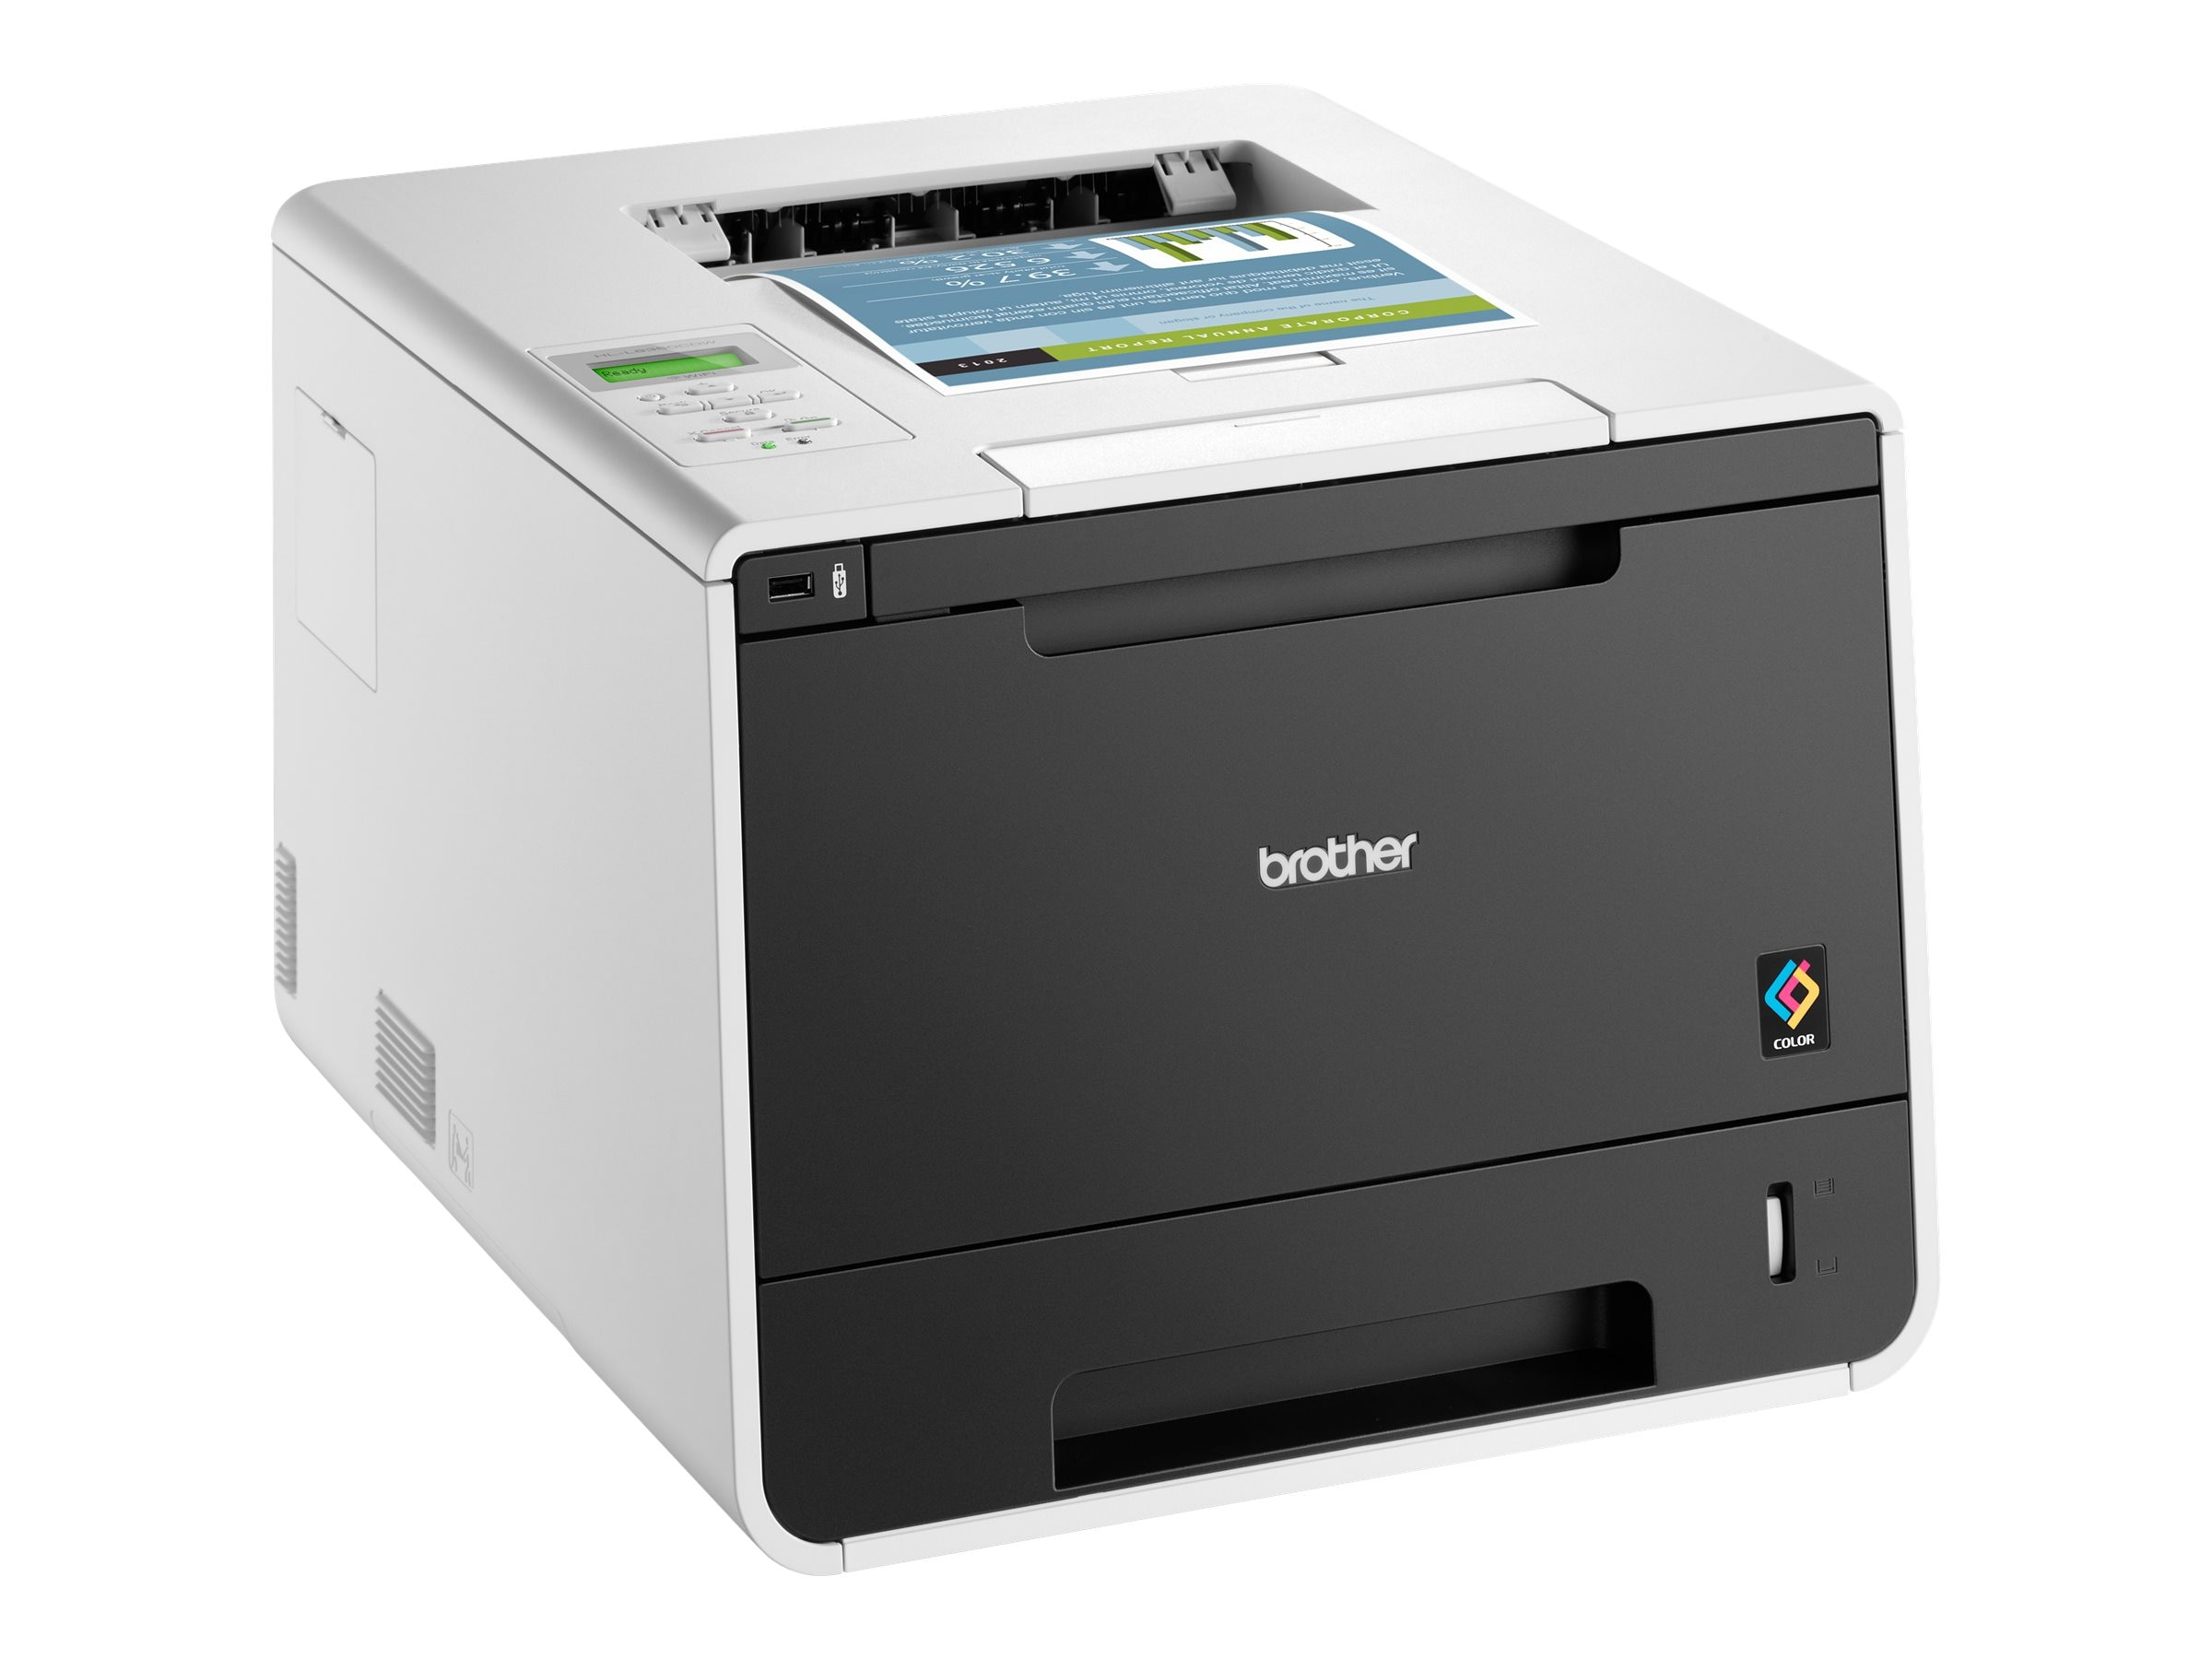 Brother HL-L8350CDW Image 5